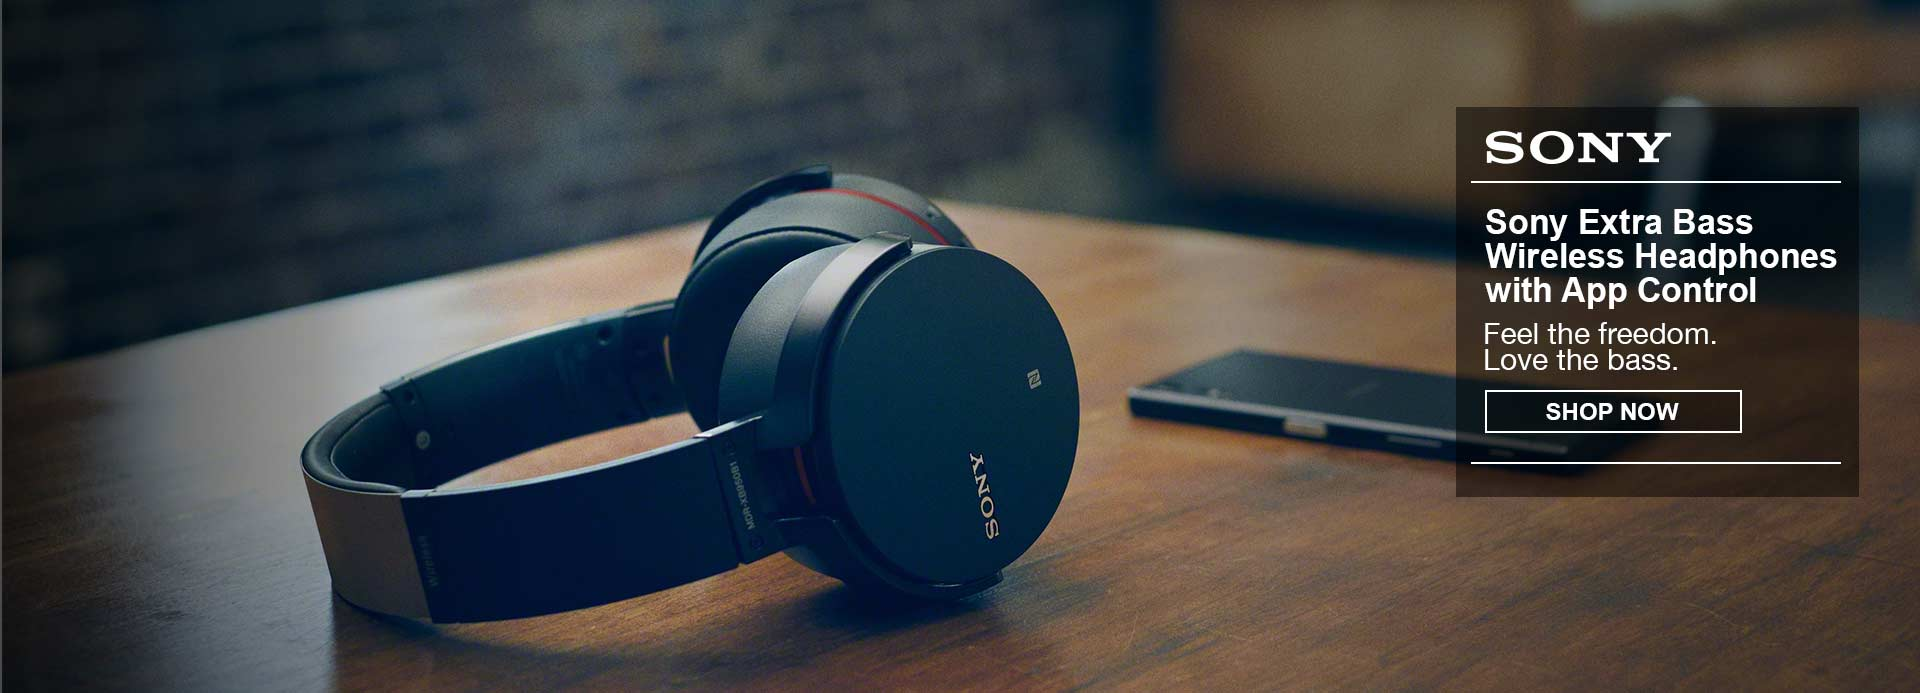 Check out the Sony XB950B1 Extra Bass Wireless Headphones with App Control (2017 model)